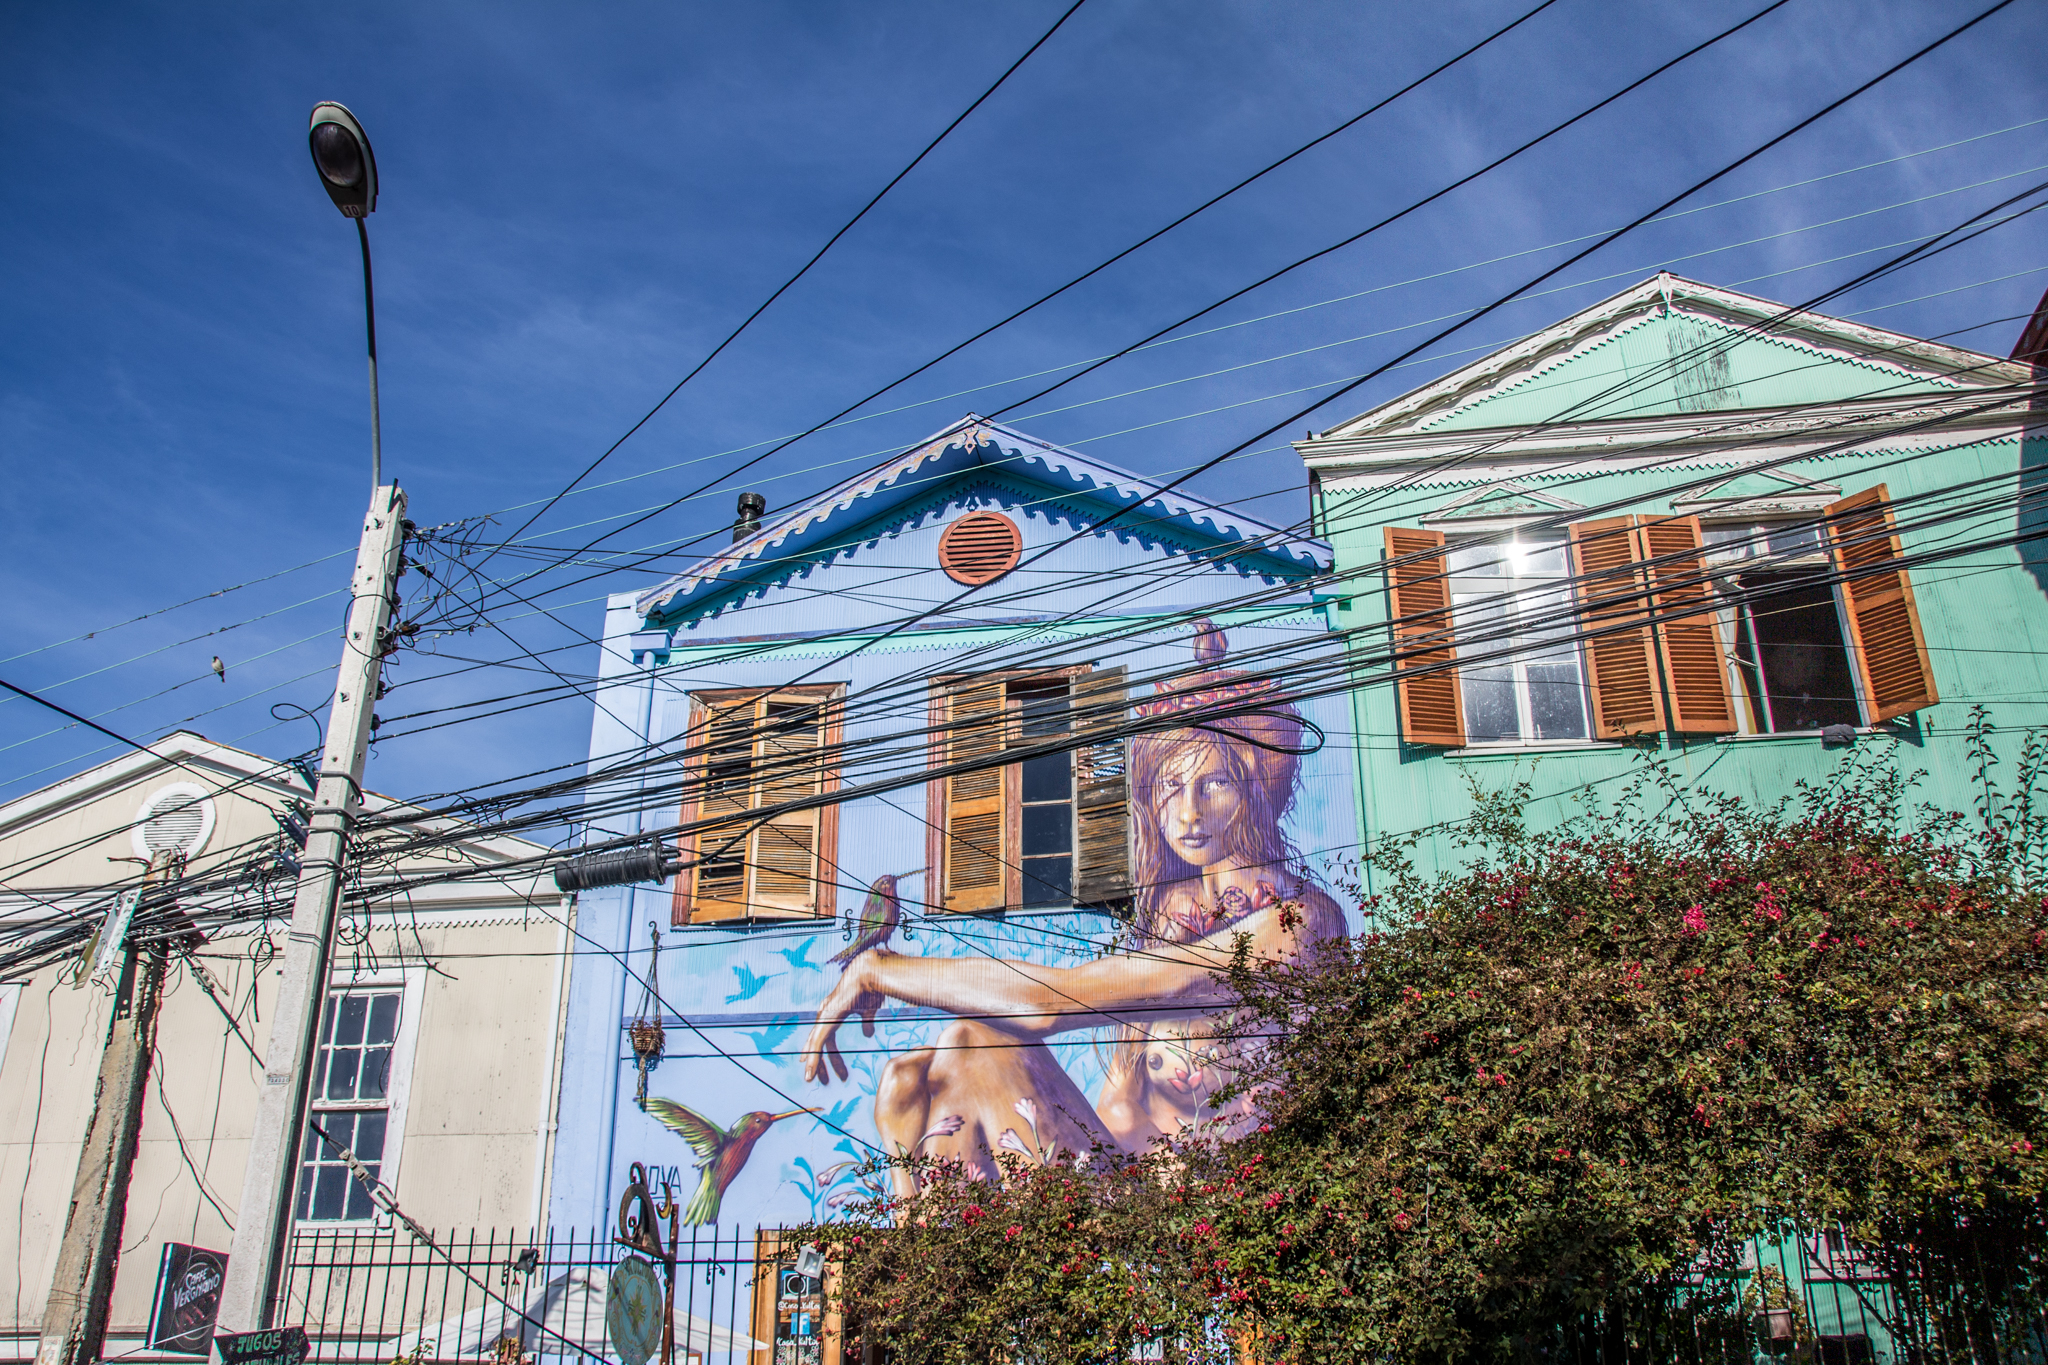 Valparaiso, Chile was the most fantastic place to find street art. They are so well known for it that they had souvenirs with various murals from the streets printed on them.